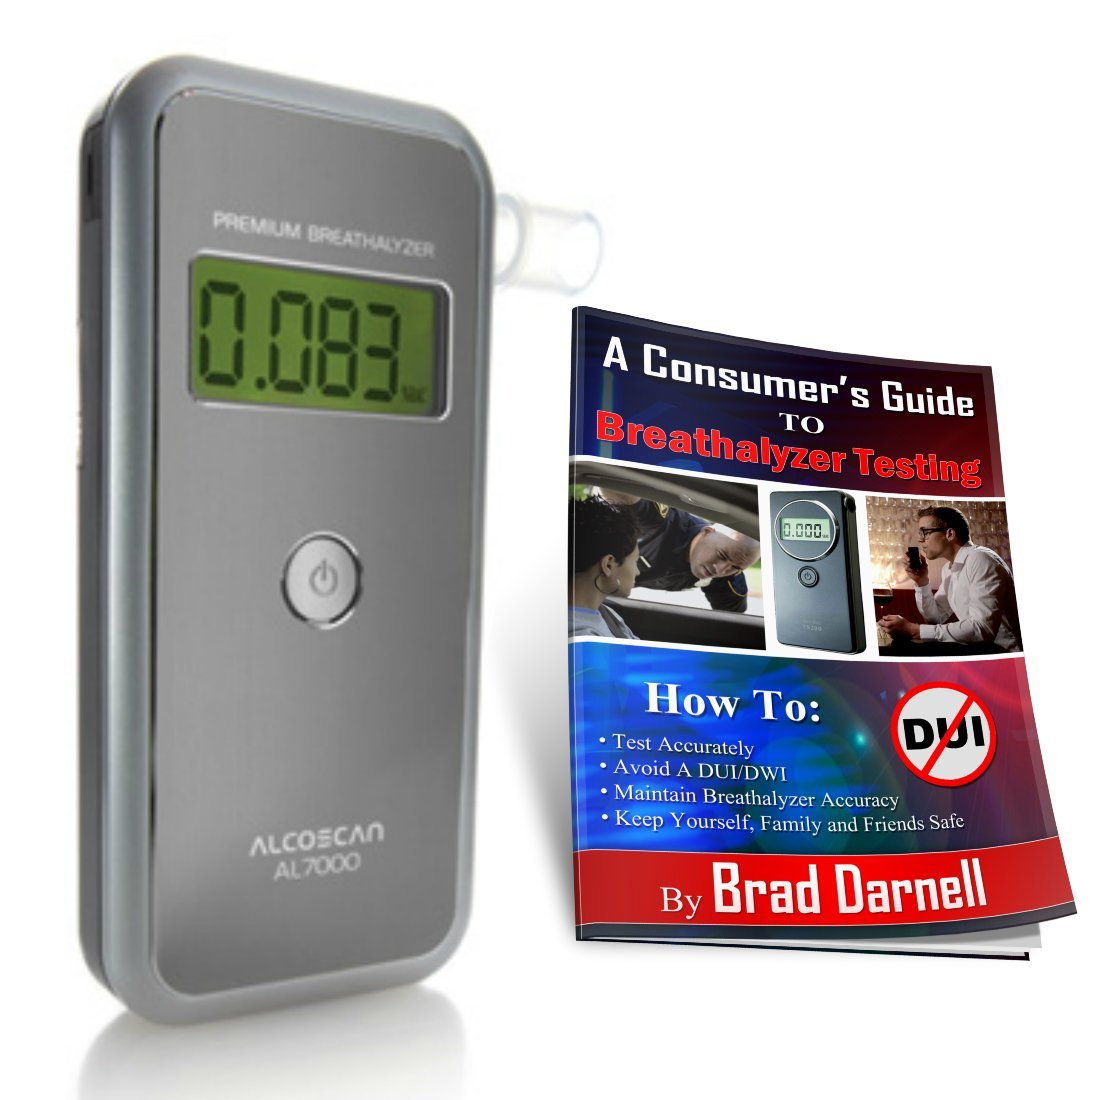 AlcoMate Breathalyzers NEVER Need Factory Calibration - Alcomate Premium AL7000 Alcohol Breathalyzer ''Basic Pack'' and FREE Breathalyzer Tester Guide - FREE 2-3 Day Air Shipping!